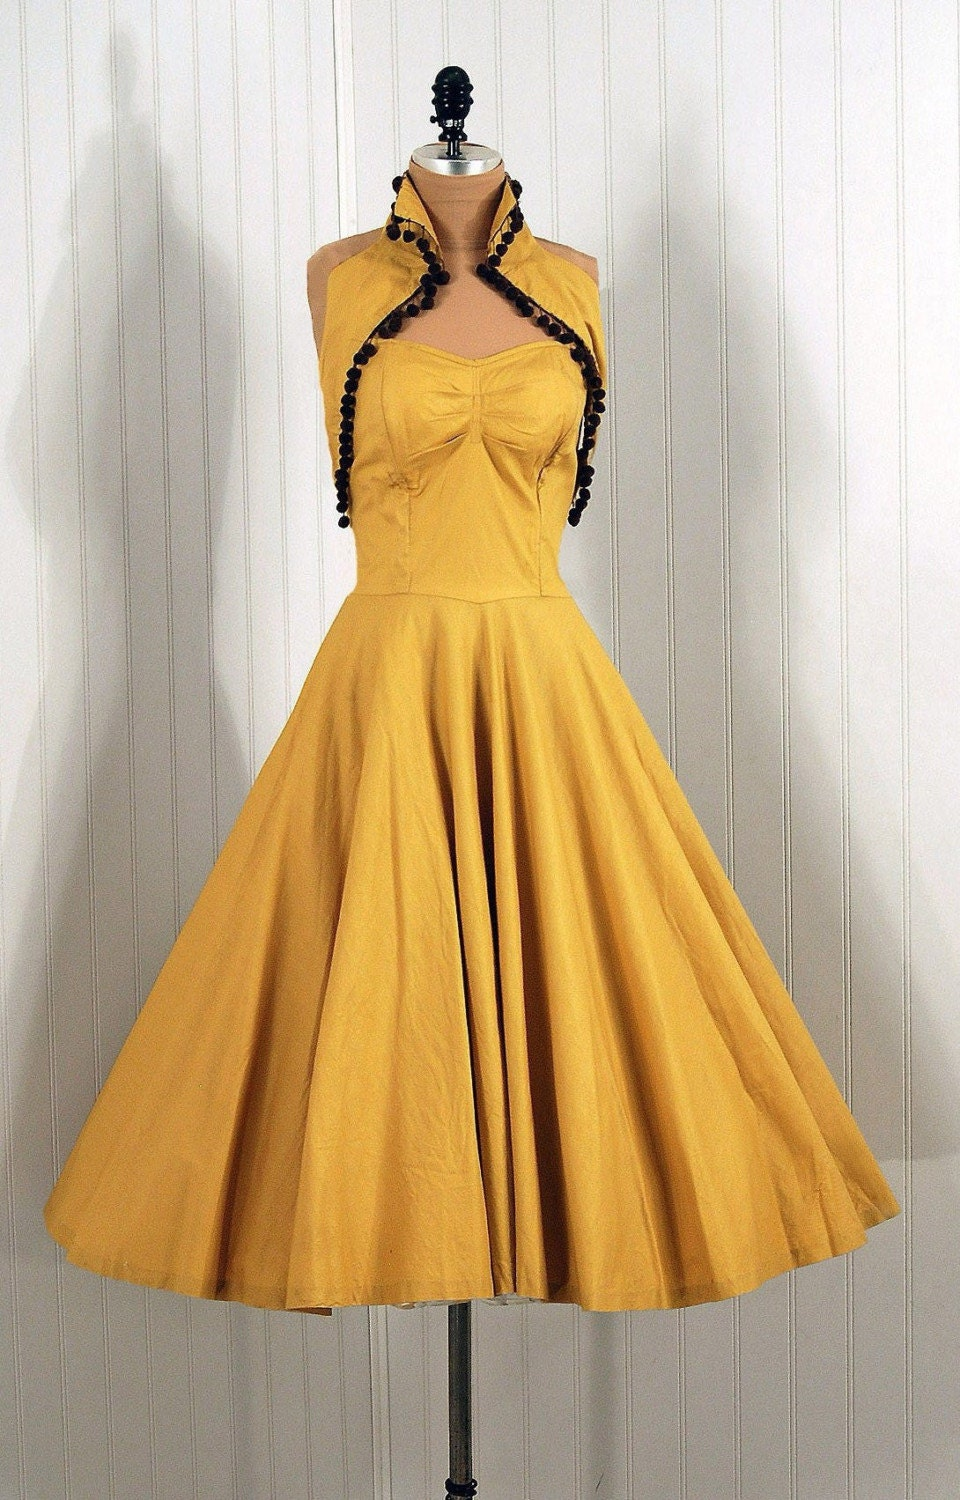 Just keep finding painfully stunning and expensive dresses